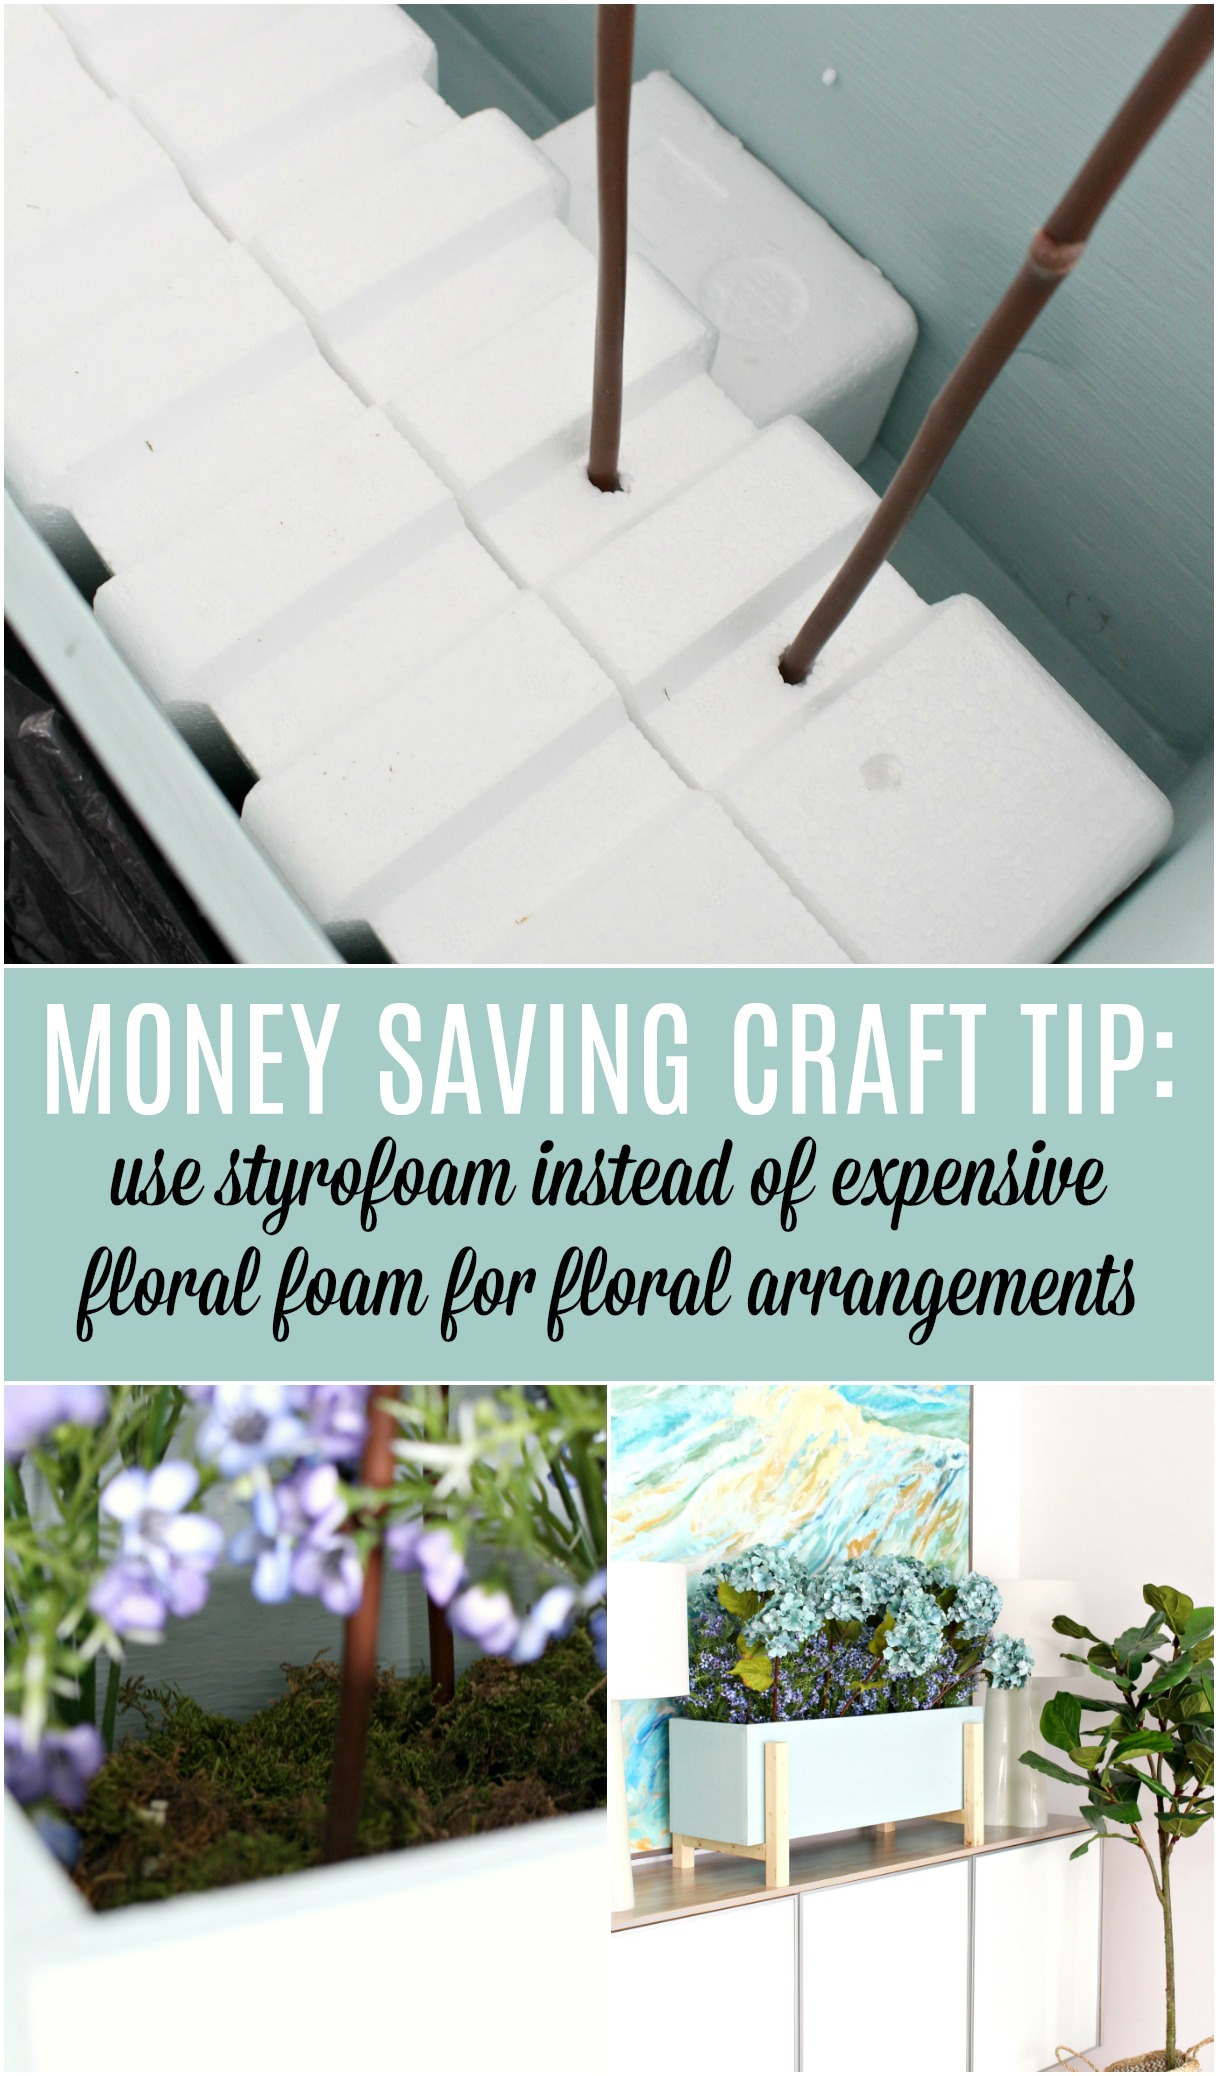 Money Saving Craft Tip: Use Styrofoam Instead of Expensive Floral Foam and Then Cover with Dollar Store Moss - Great Upcycle Idea! Save Money on Crafts, and Help the Planet Too! #savingmoney #moneysavingcrafts #moneysavingtips #crafttips #floralarrangement